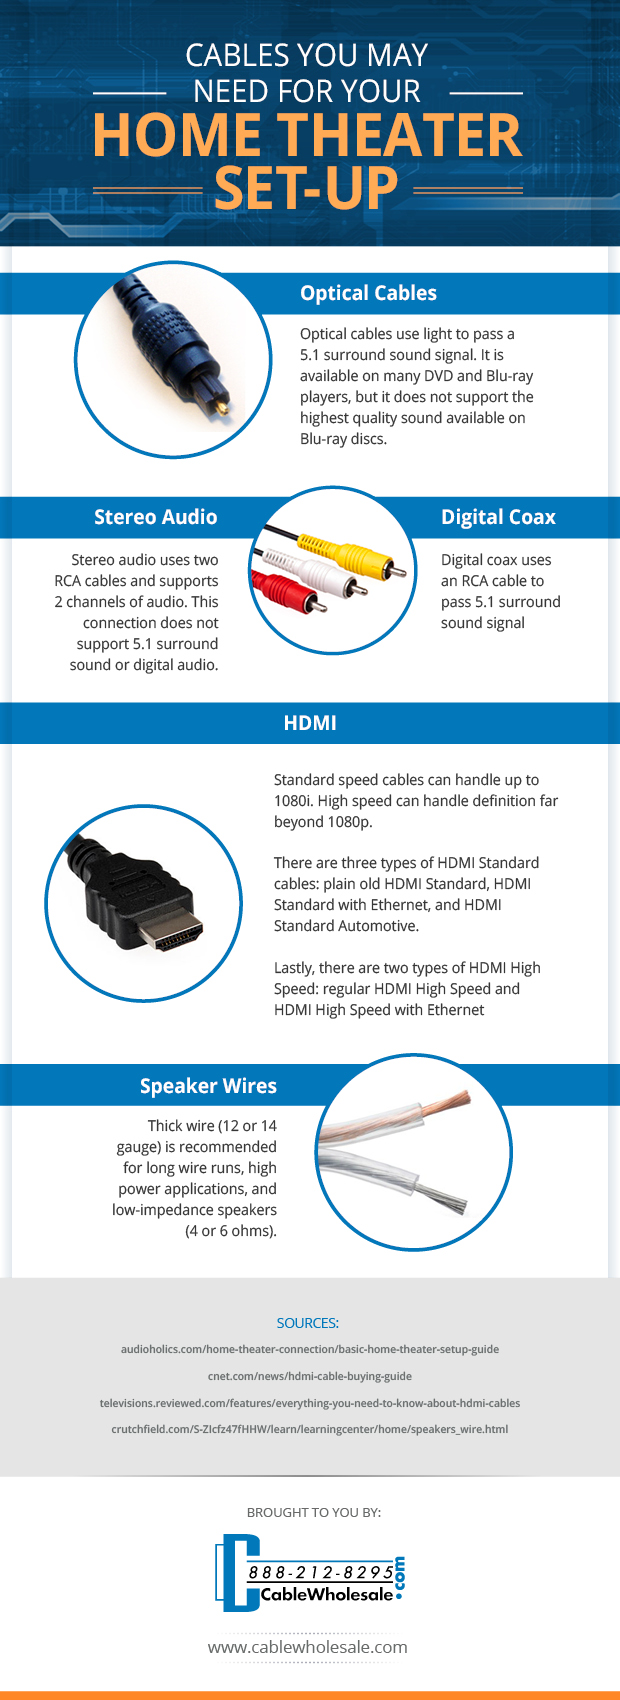 Cables You May Need For Your Home Theater Set-Up